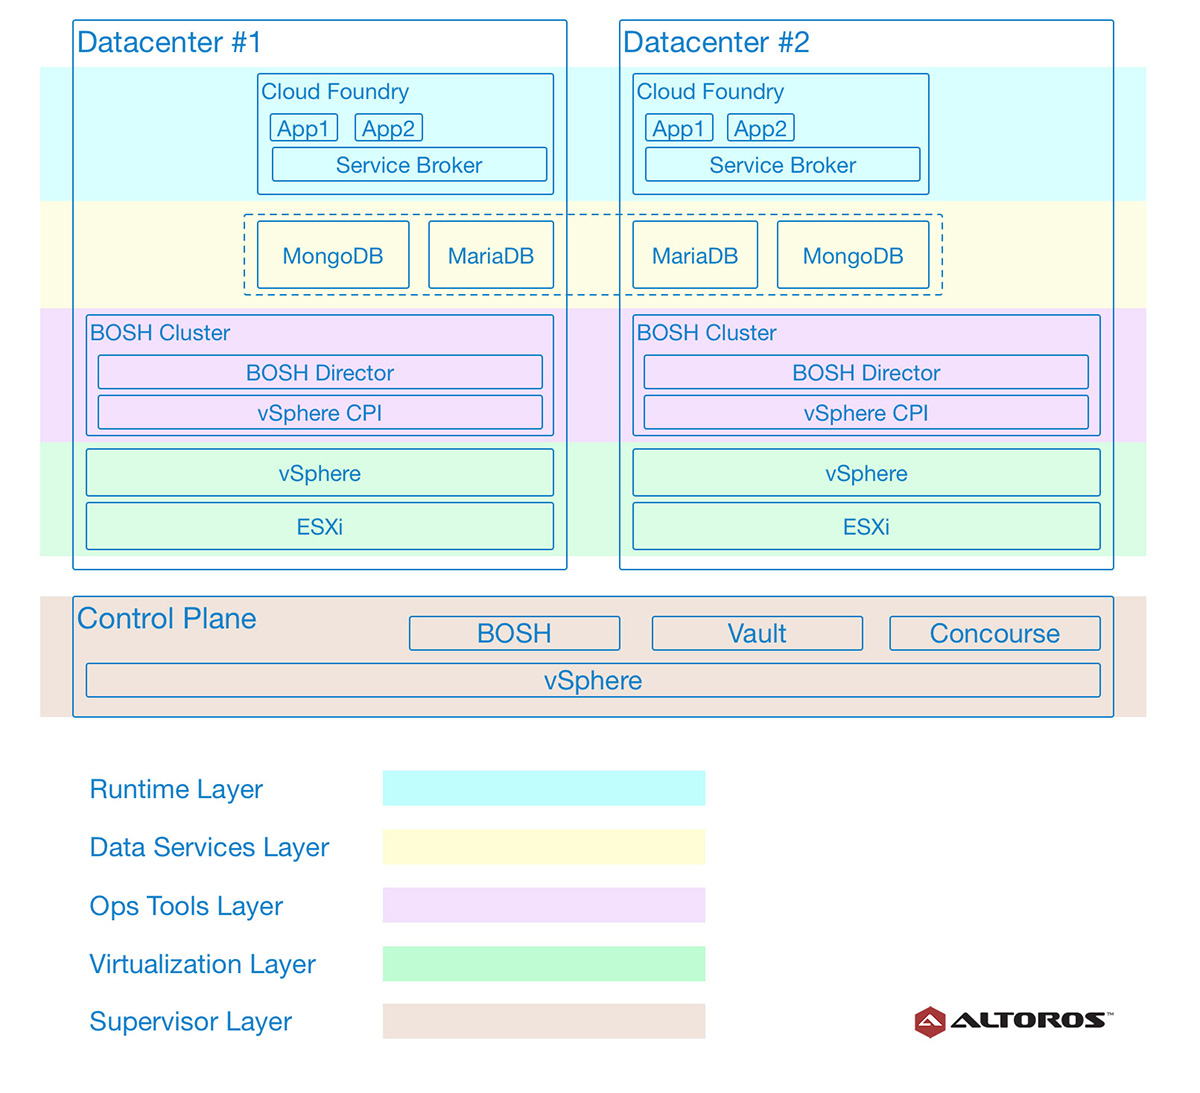 multi-data-center-cloud-foundry-reference-architecture-using-concourse-vault-bosh-layers-of-an-active-active-deployment-v11